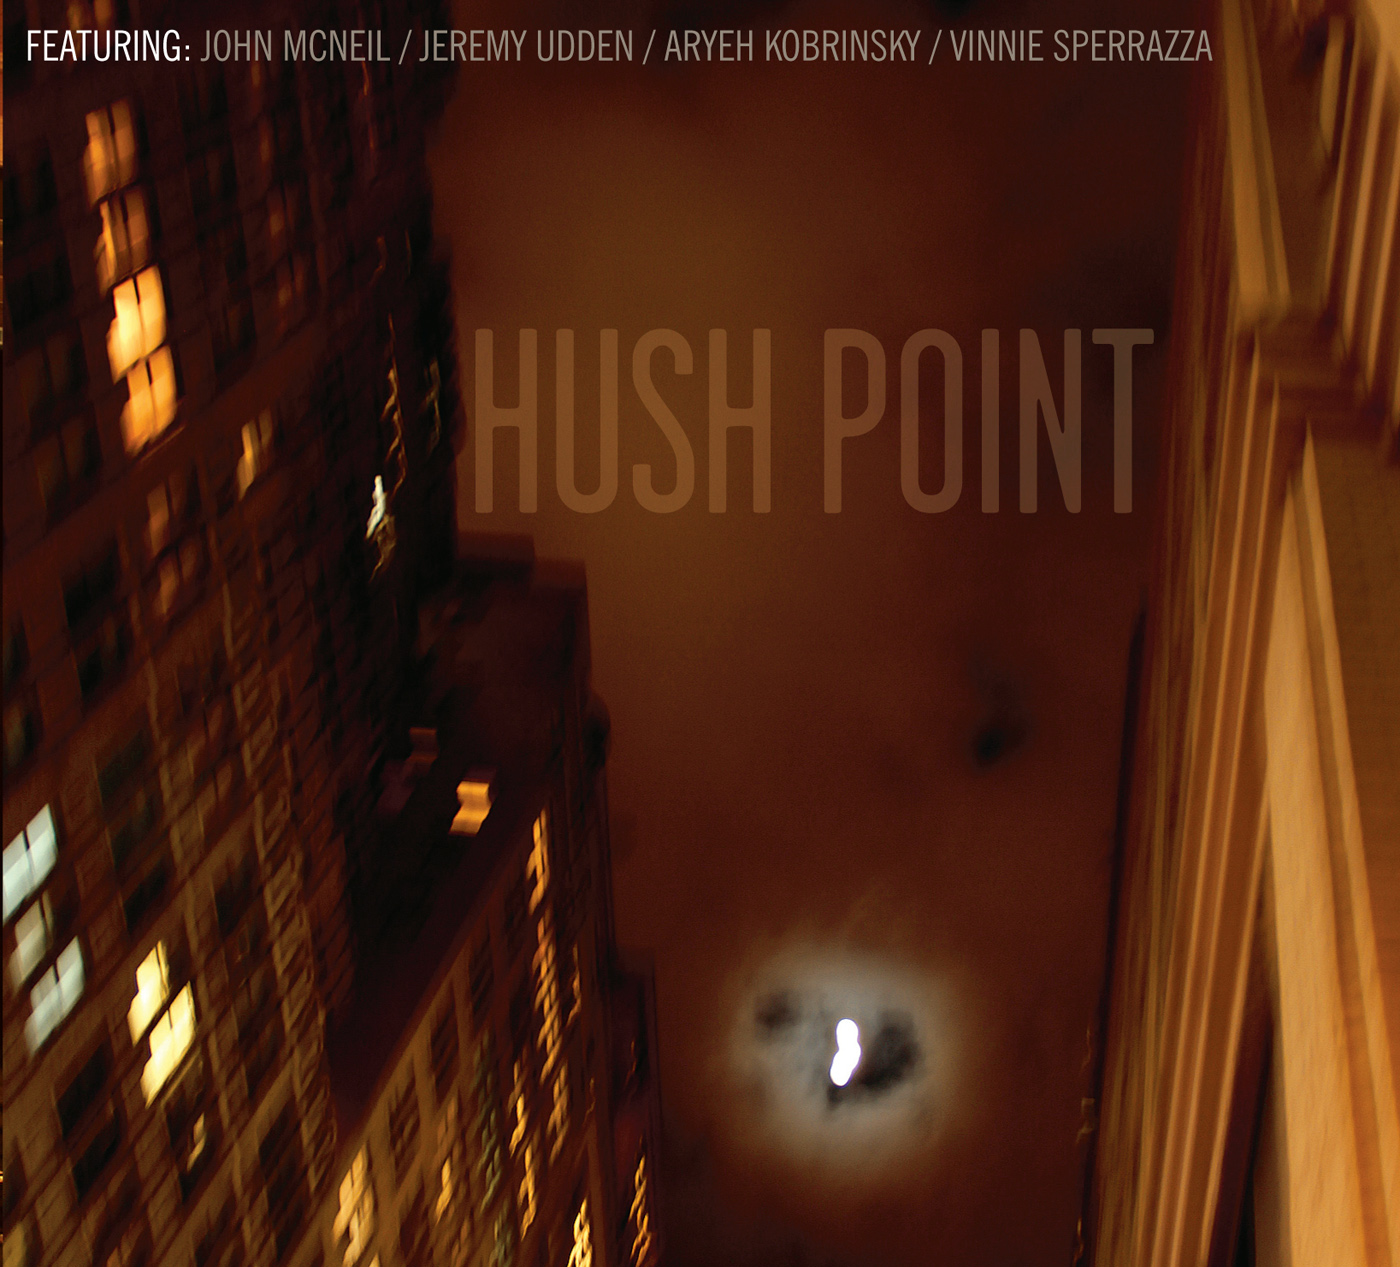 Hush Point by John McNeil cover